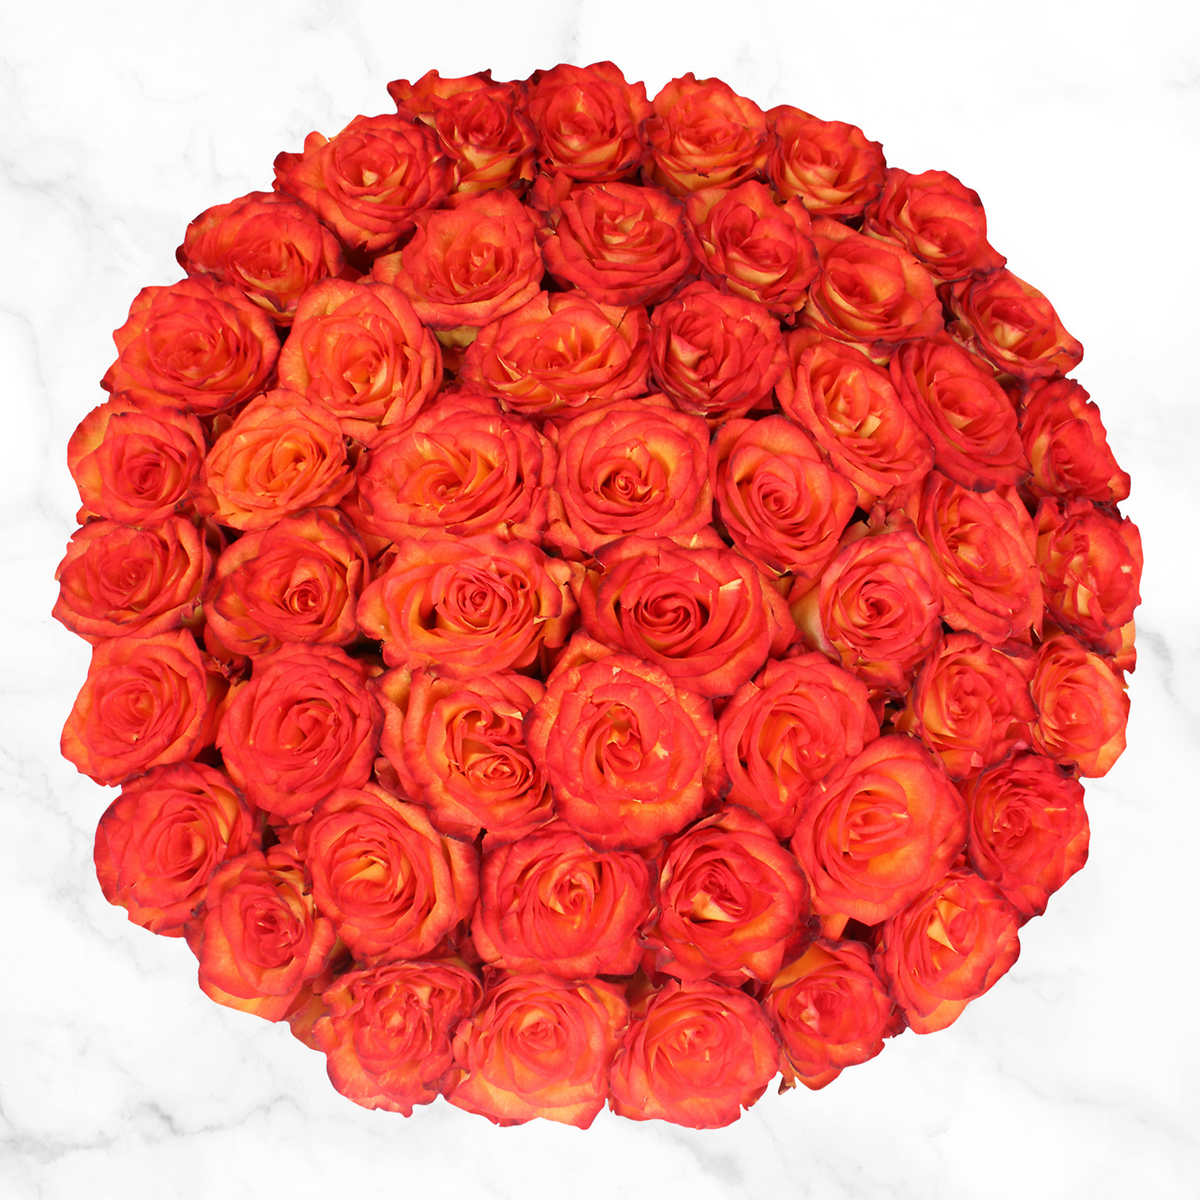 Home bulk roses peach roses - Member Only Item